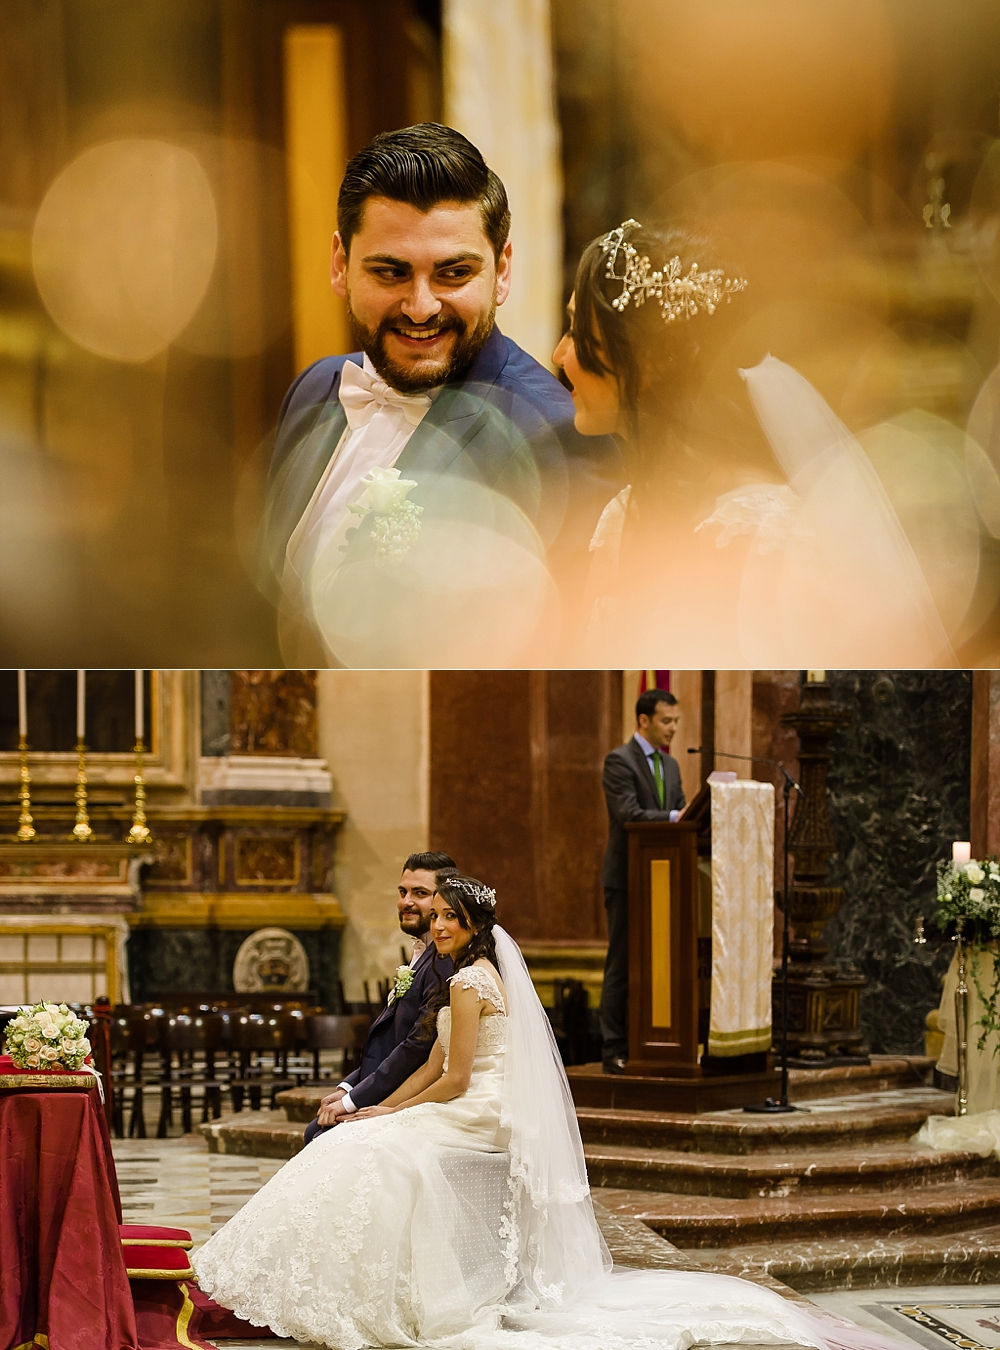 Christina & Thomas - Razzett L-Abjad - Wedding Malta - Shane P. Watts Photography